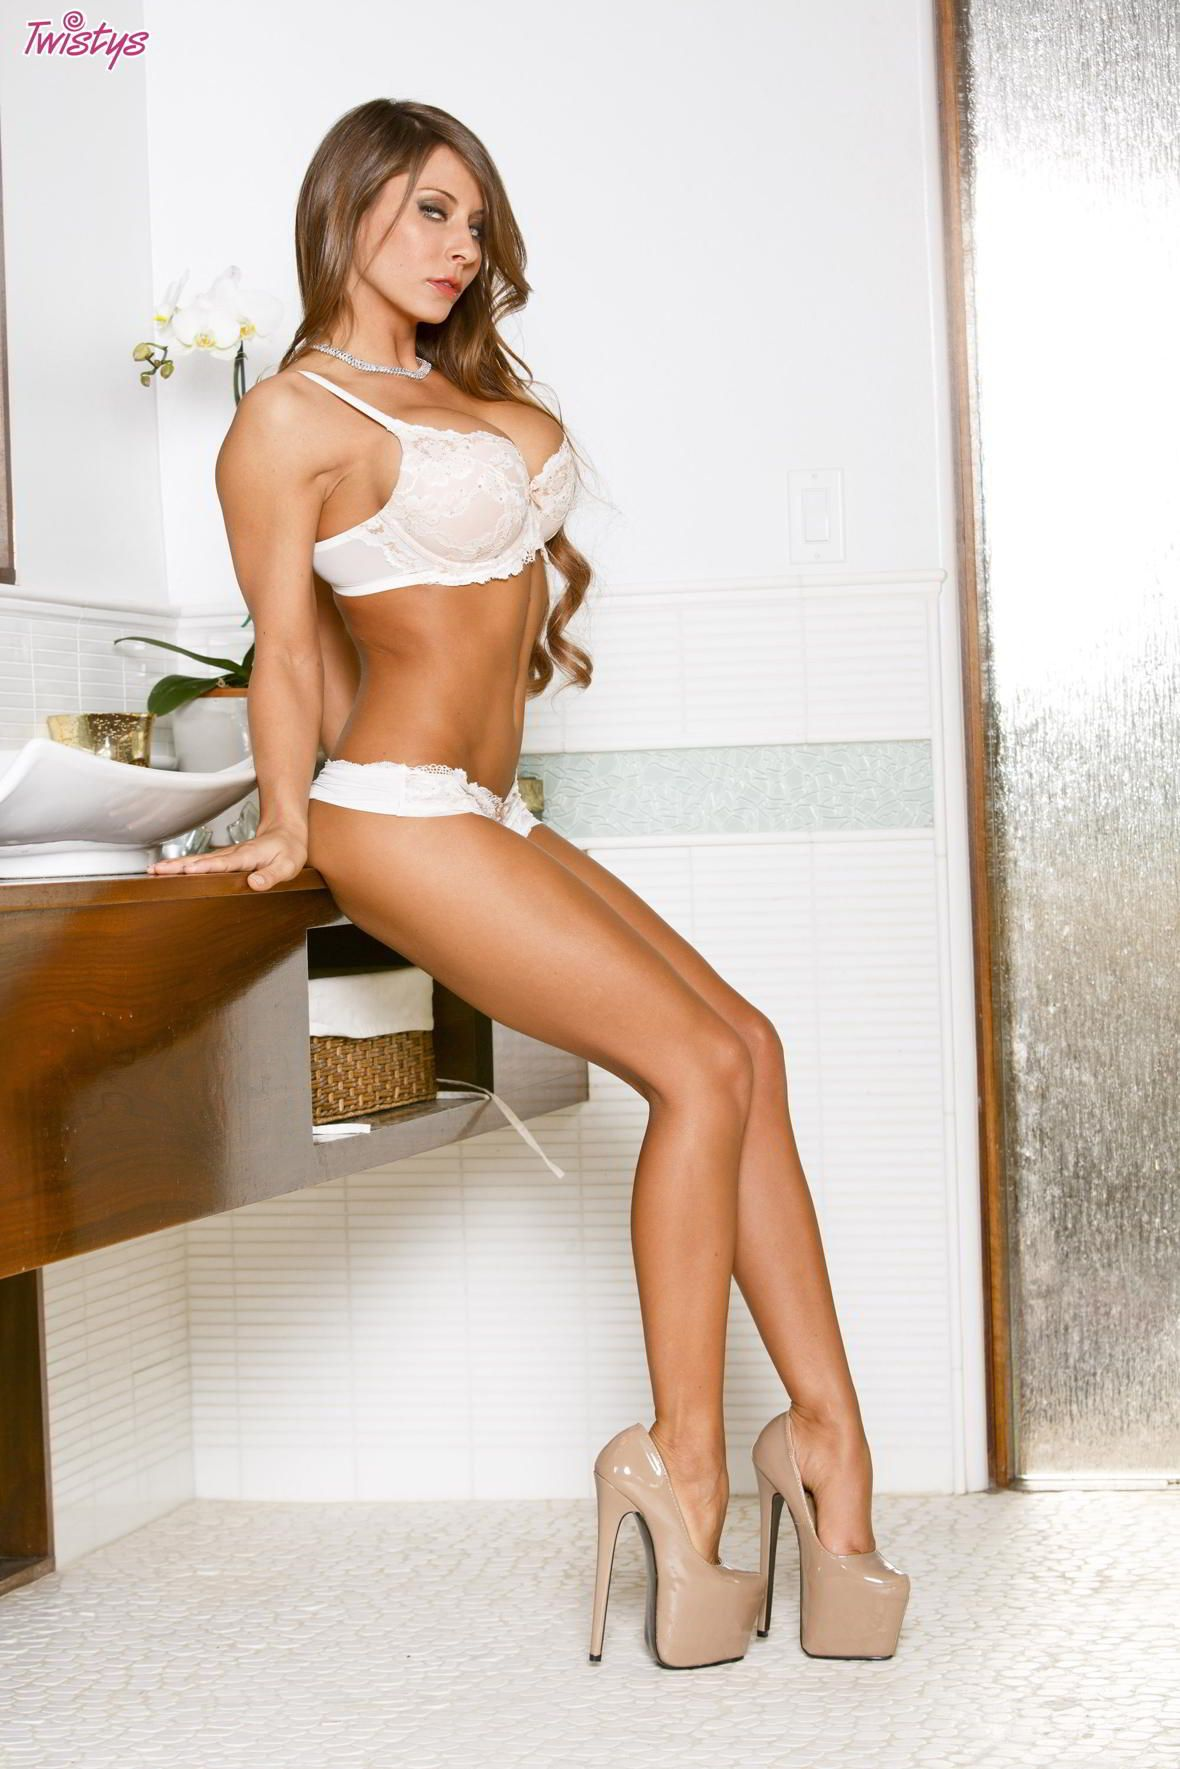 Madison ivy high heels